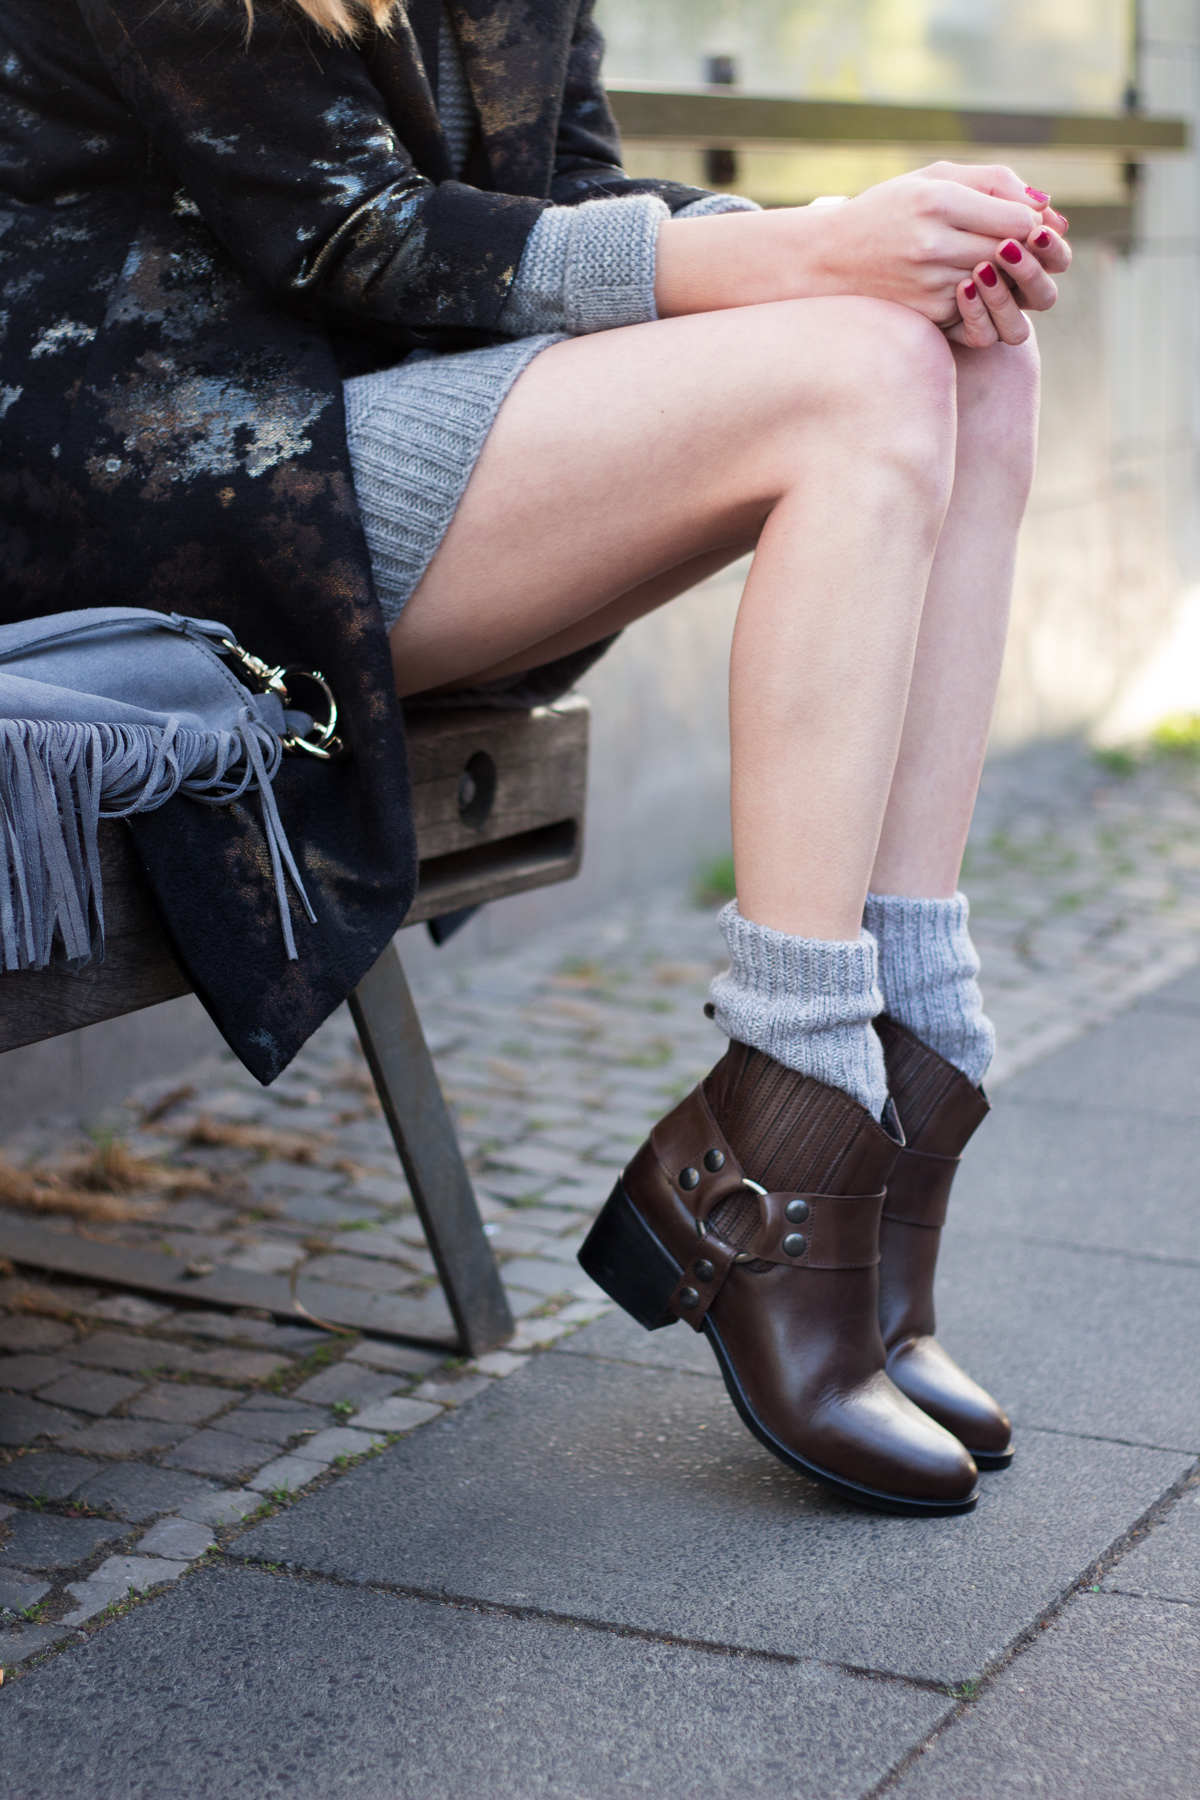 Grey Knit Dress & Fall Boots - How I met my outfit by Dana Lohmüller